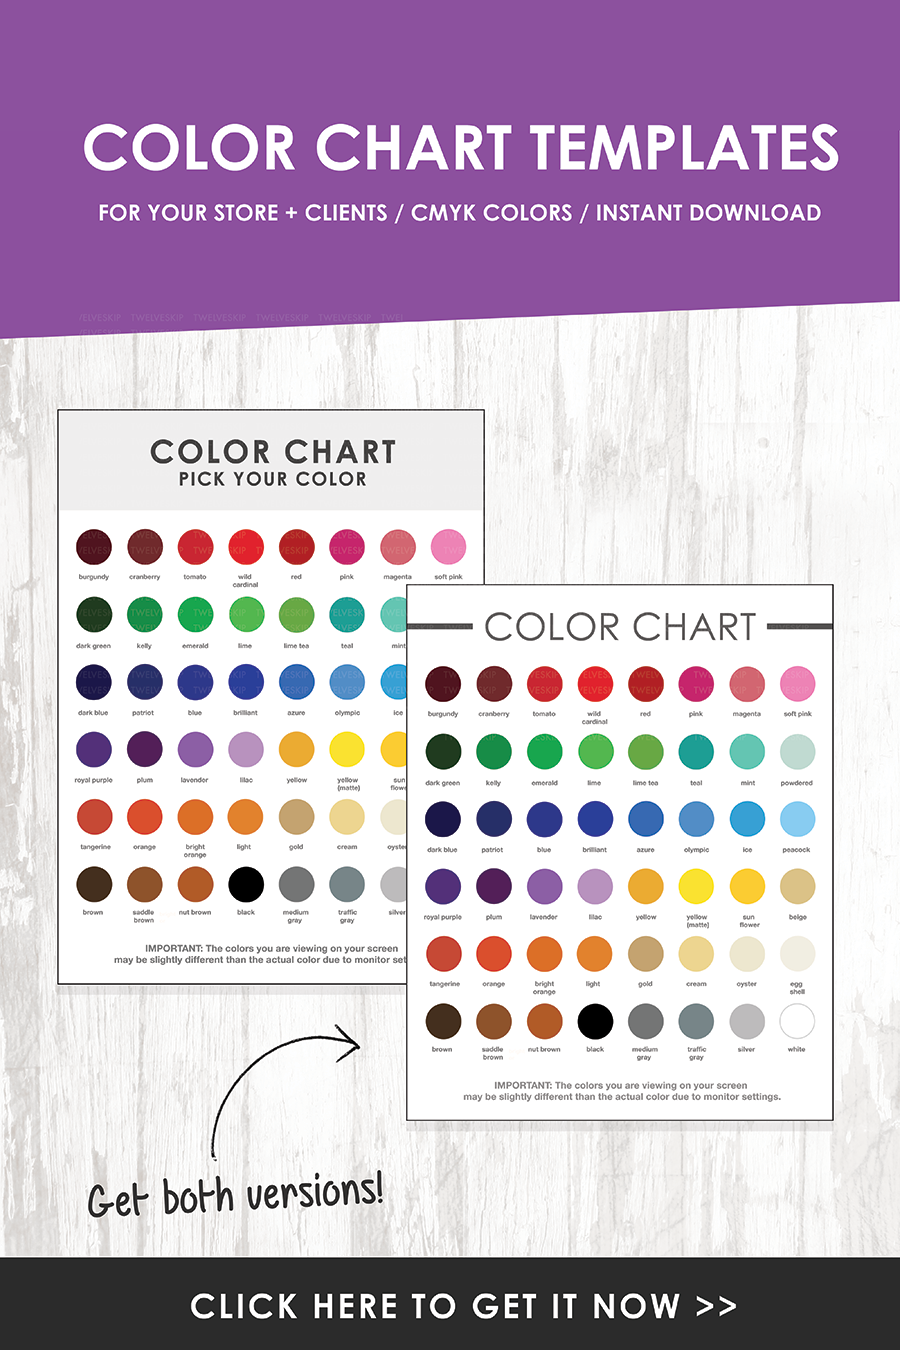 CLICK THE PIN TO DOWNLOAD Heres a premade color chart template – Color Chart Template